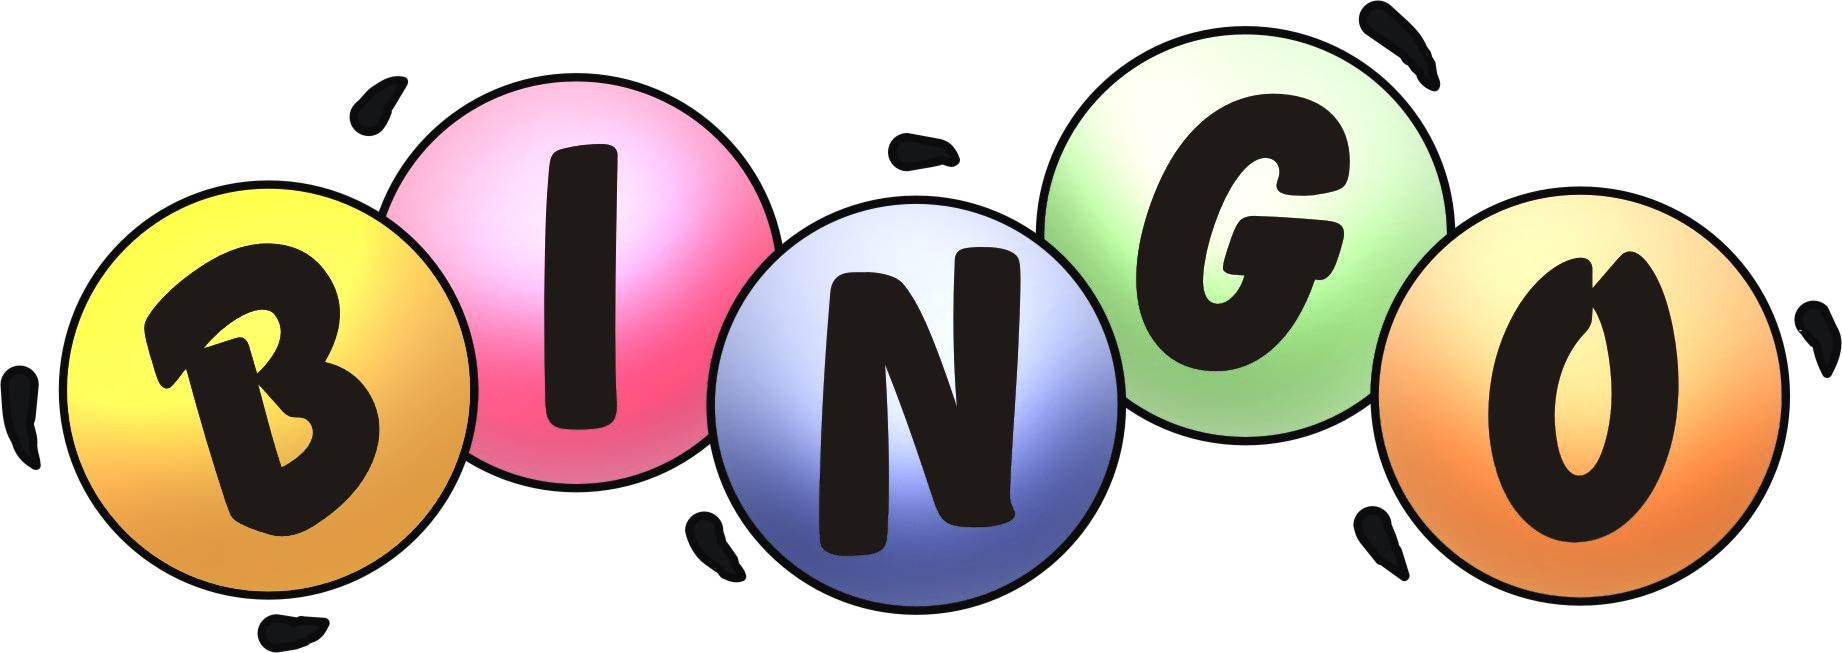 1842x653 Awesome Bingo Clipart Gallery